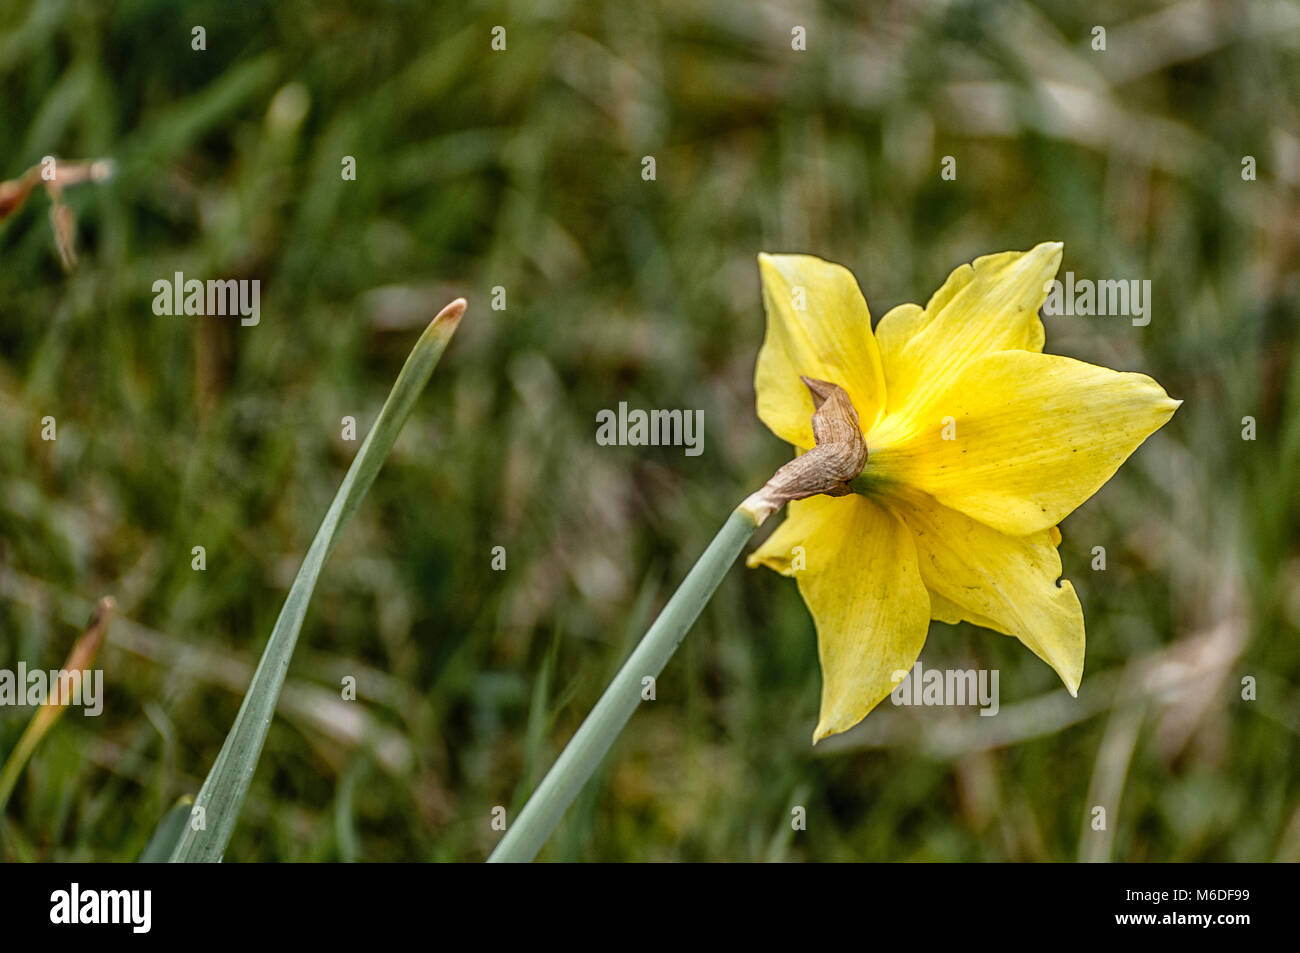 Yellow Flower Weed Stock Photos Yellow Flower Weed Stock Images